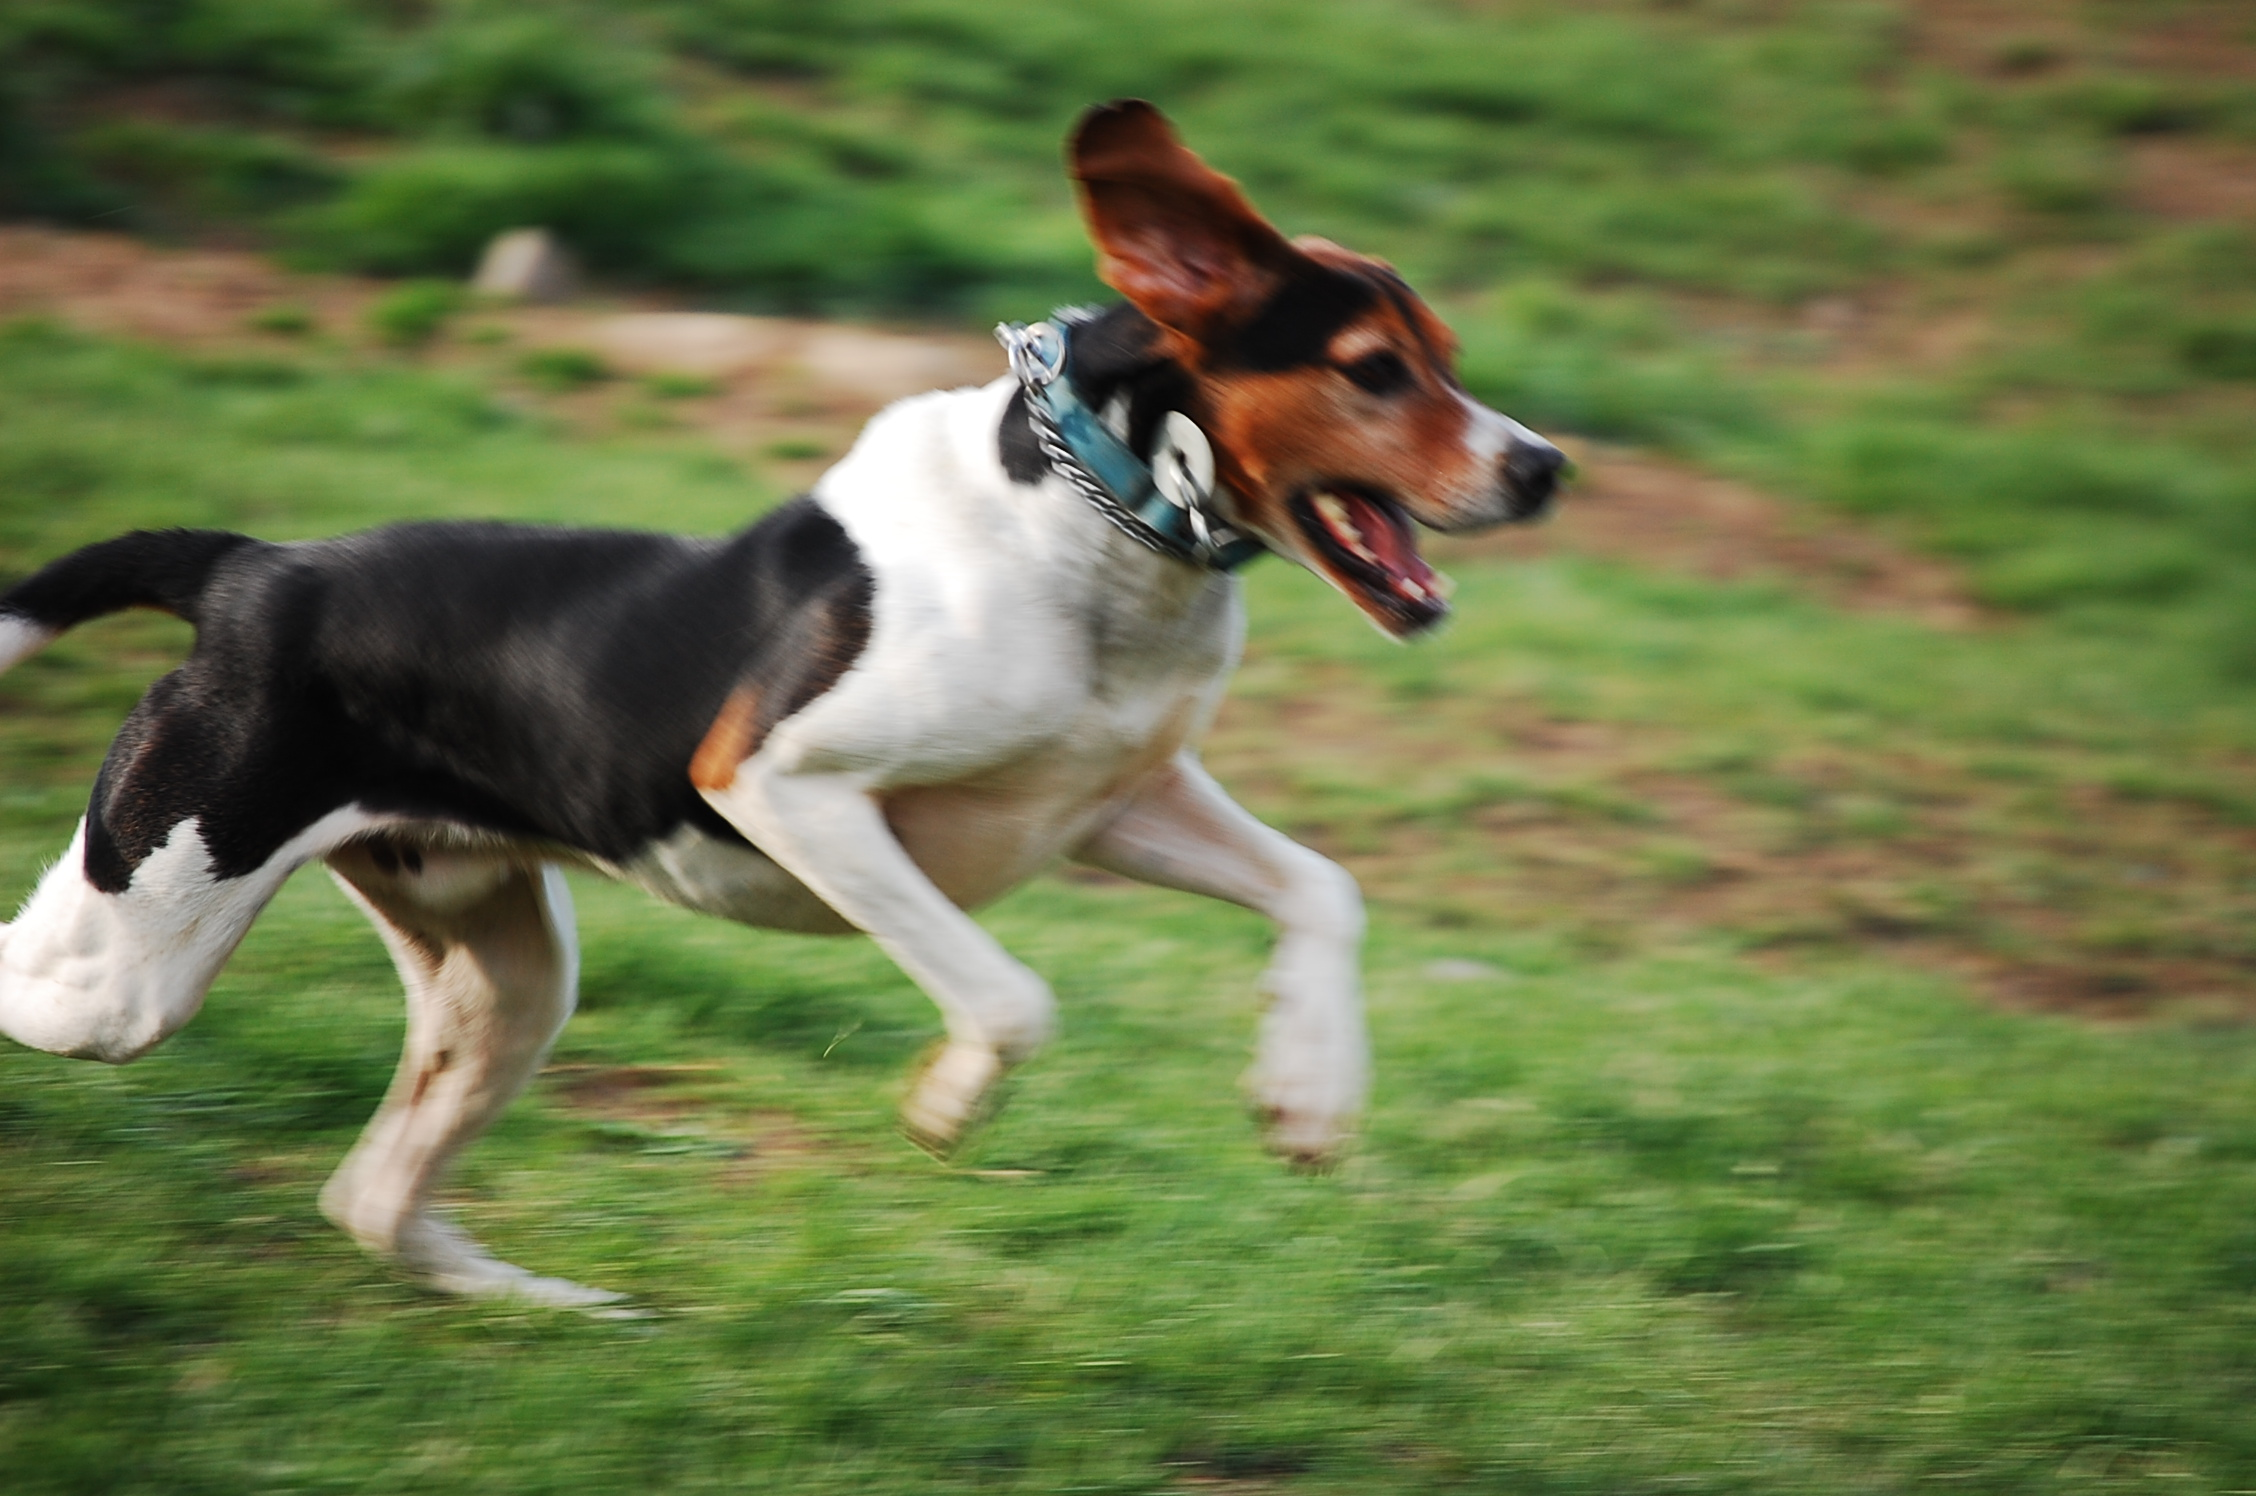 Jumping English Foxhound dog wallpaper